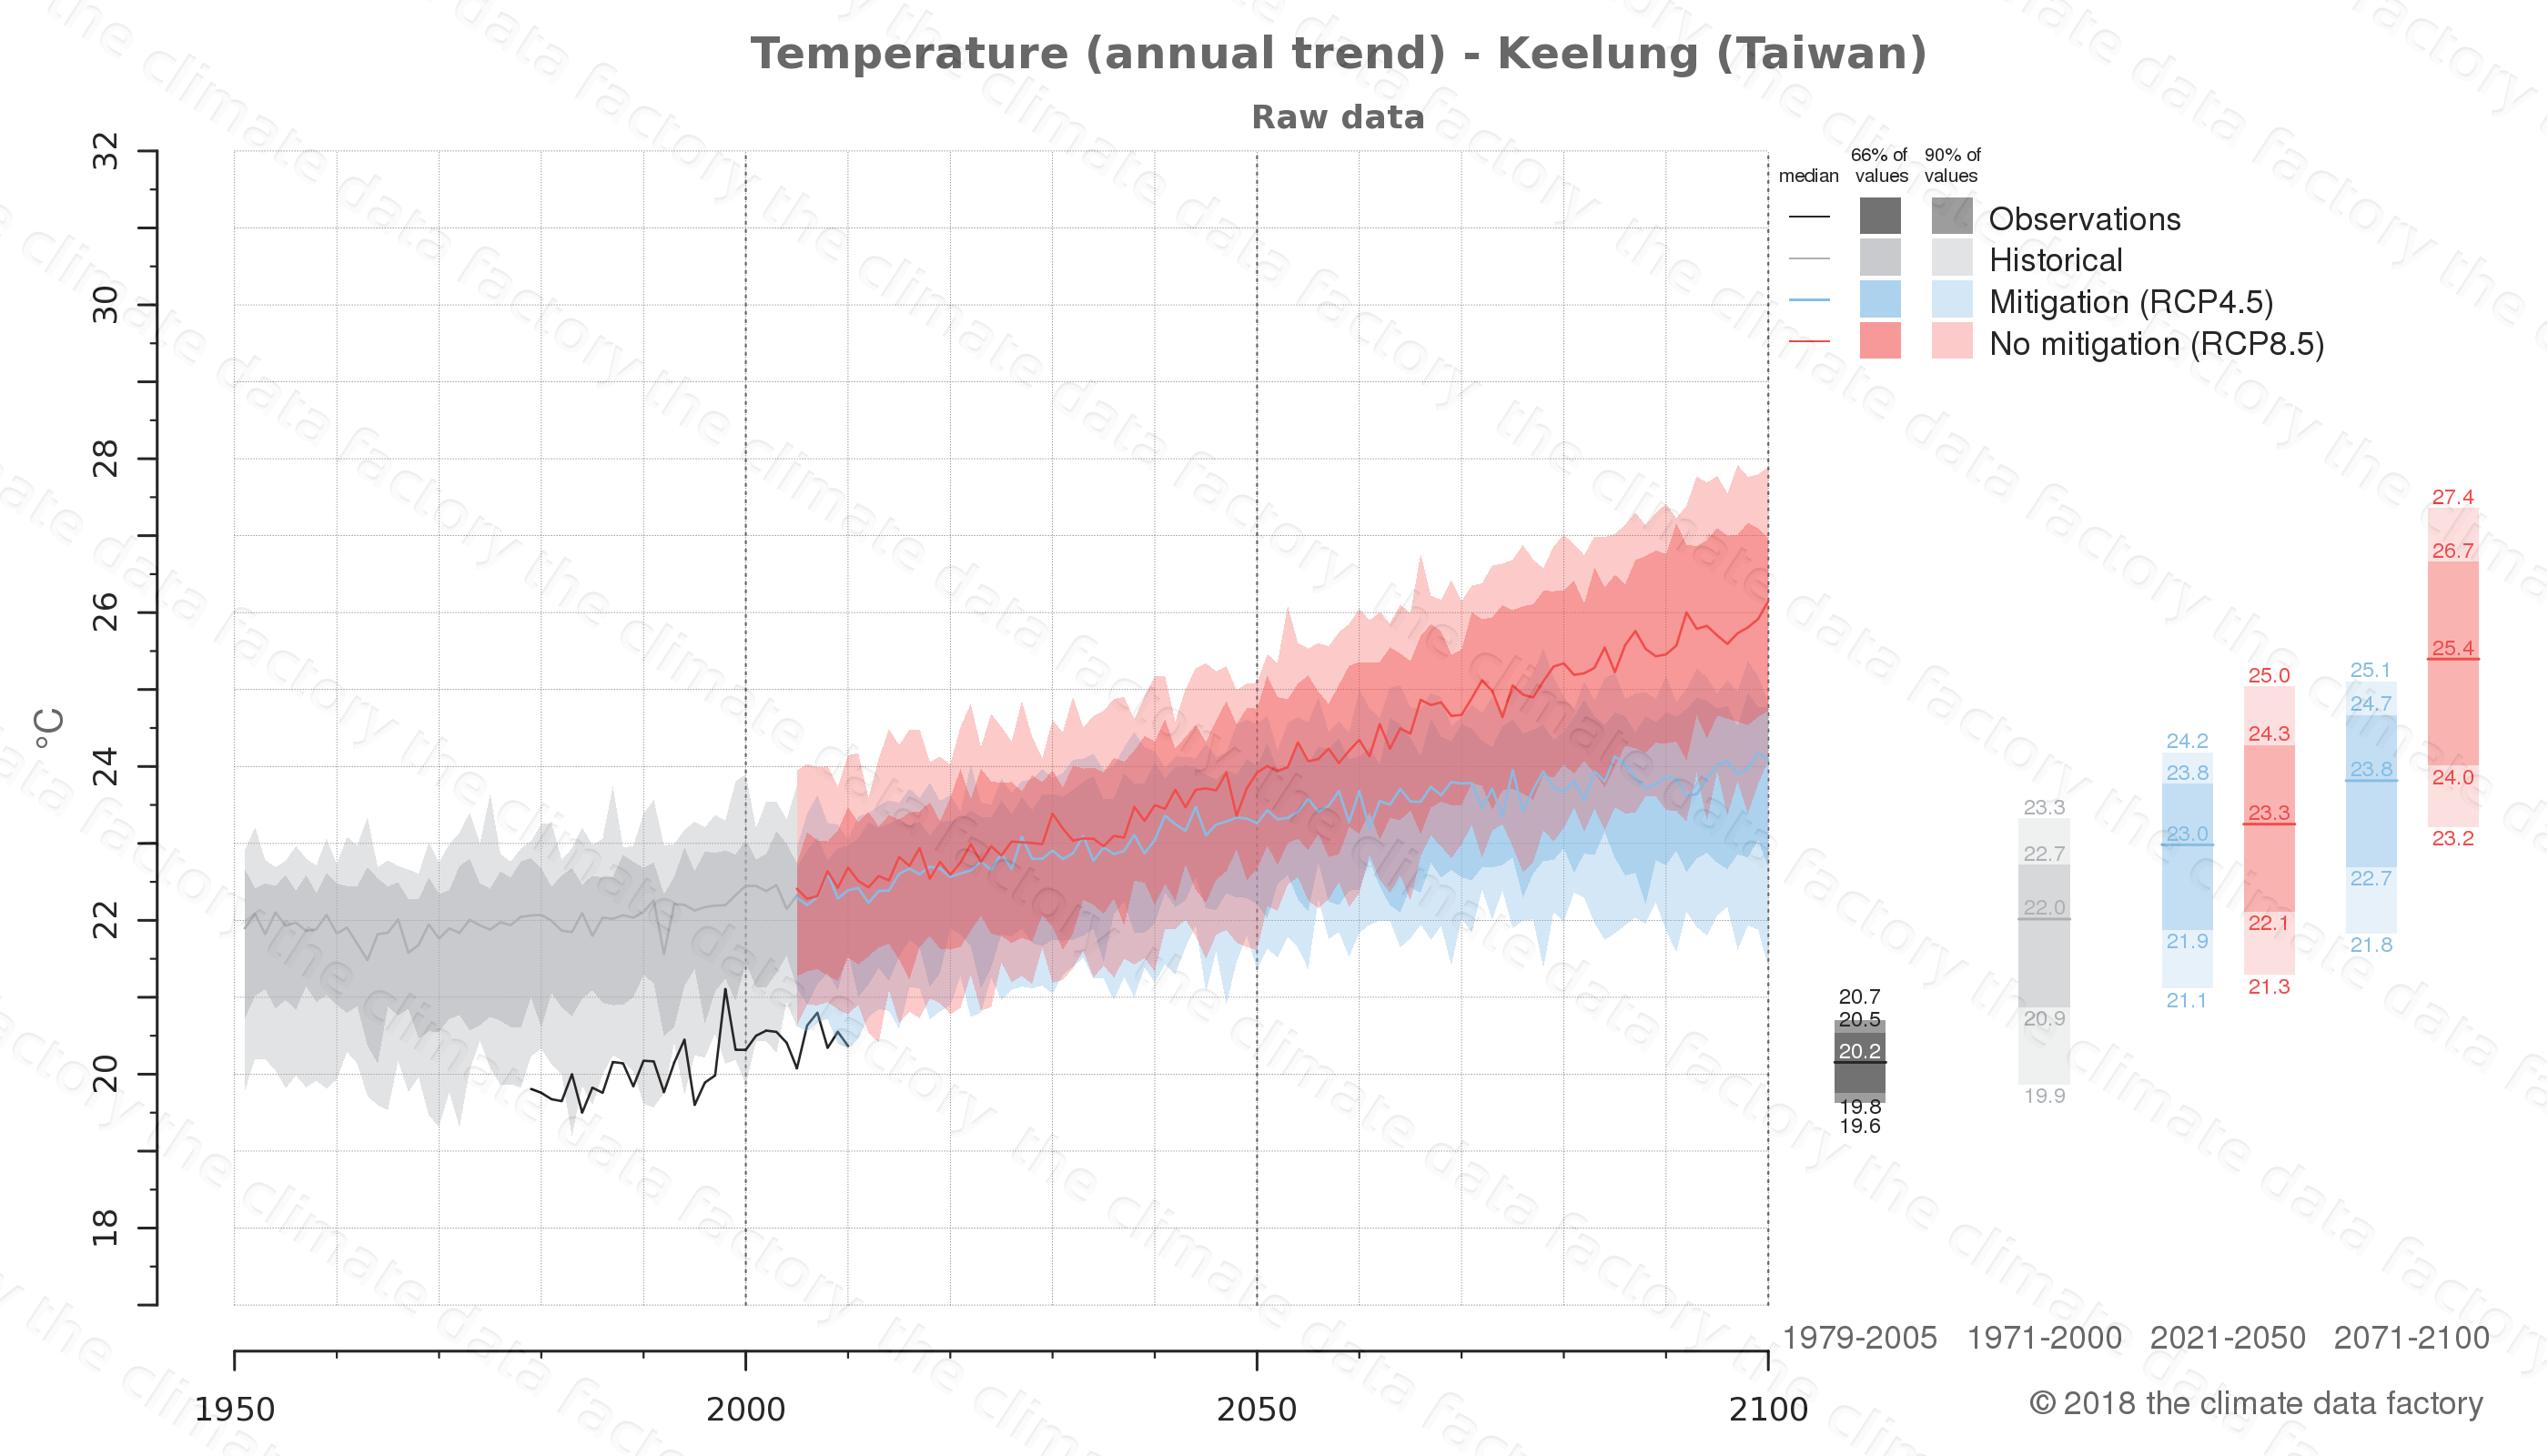 climate change data policy adaptation climate graph city data temperature keelung taiwan